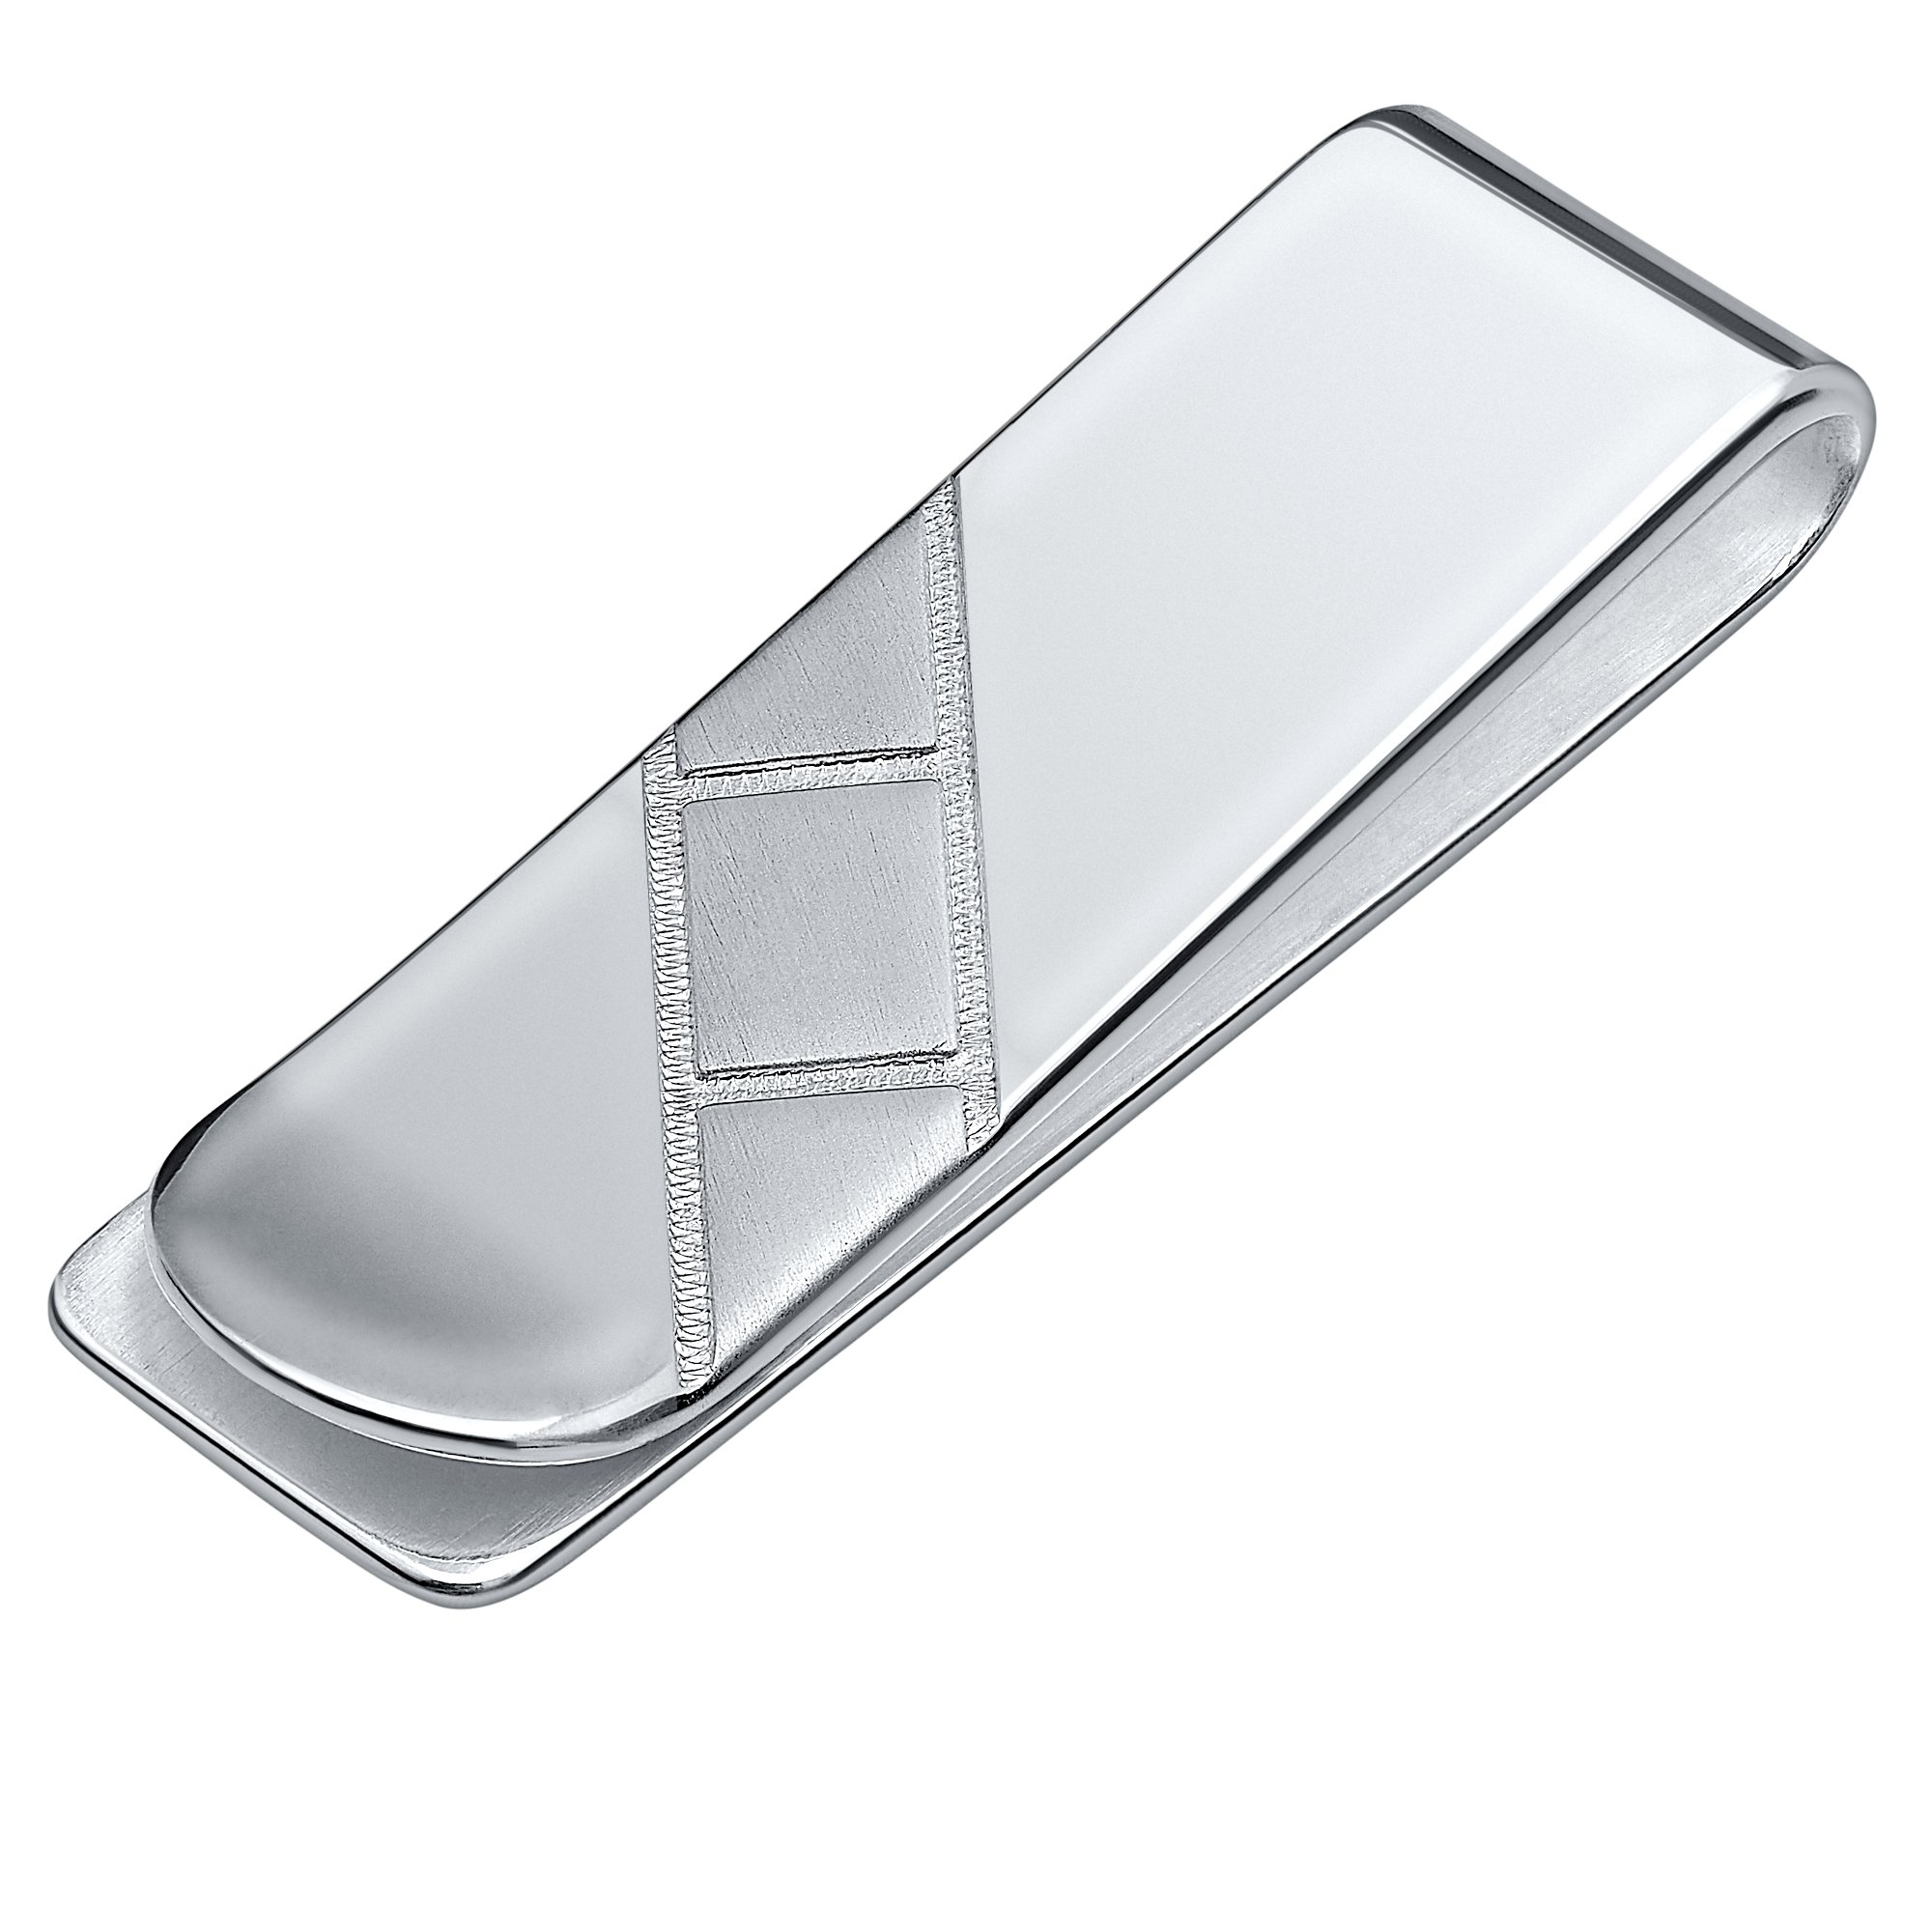 Sterling Silver .925 Solid Design Engravable Hand Polished Money Clip, Designed and Made In Italy. By Sterling Manufacturers